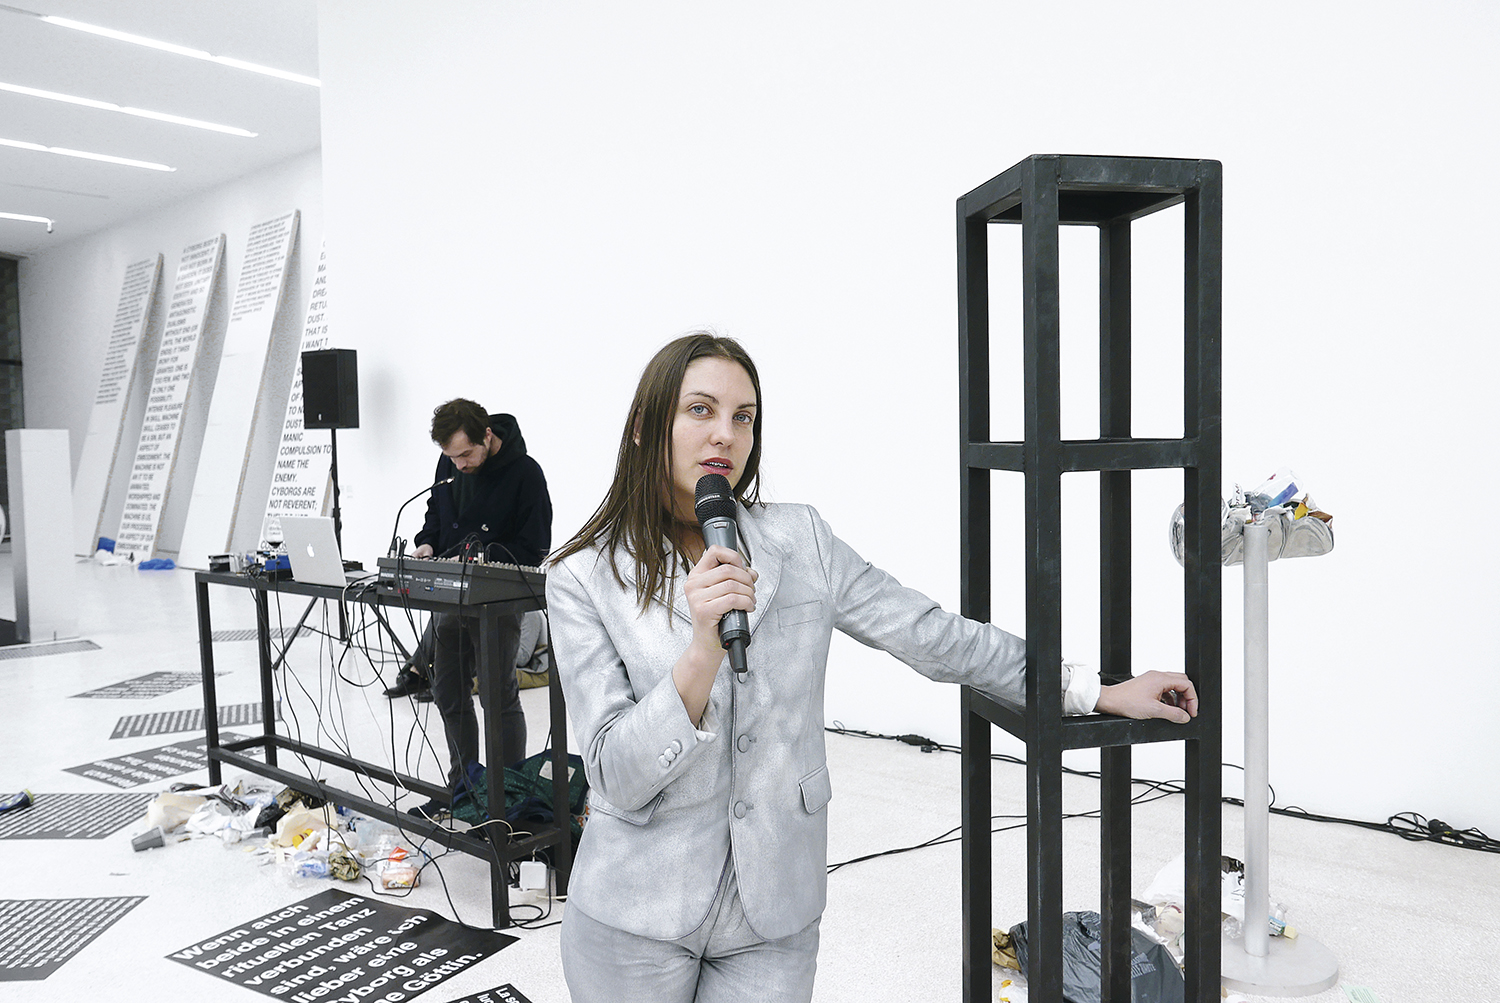 Lili Reynaud-Dewar, 'TEETH, GUMS, MACHINES, FUTURE, SOCIETY', exhibition and performance with Ashley Cook and Hendrik Hegray at Museion in Bolzano, Italy, 2017, courtesy the artist. Photo Marina Faust